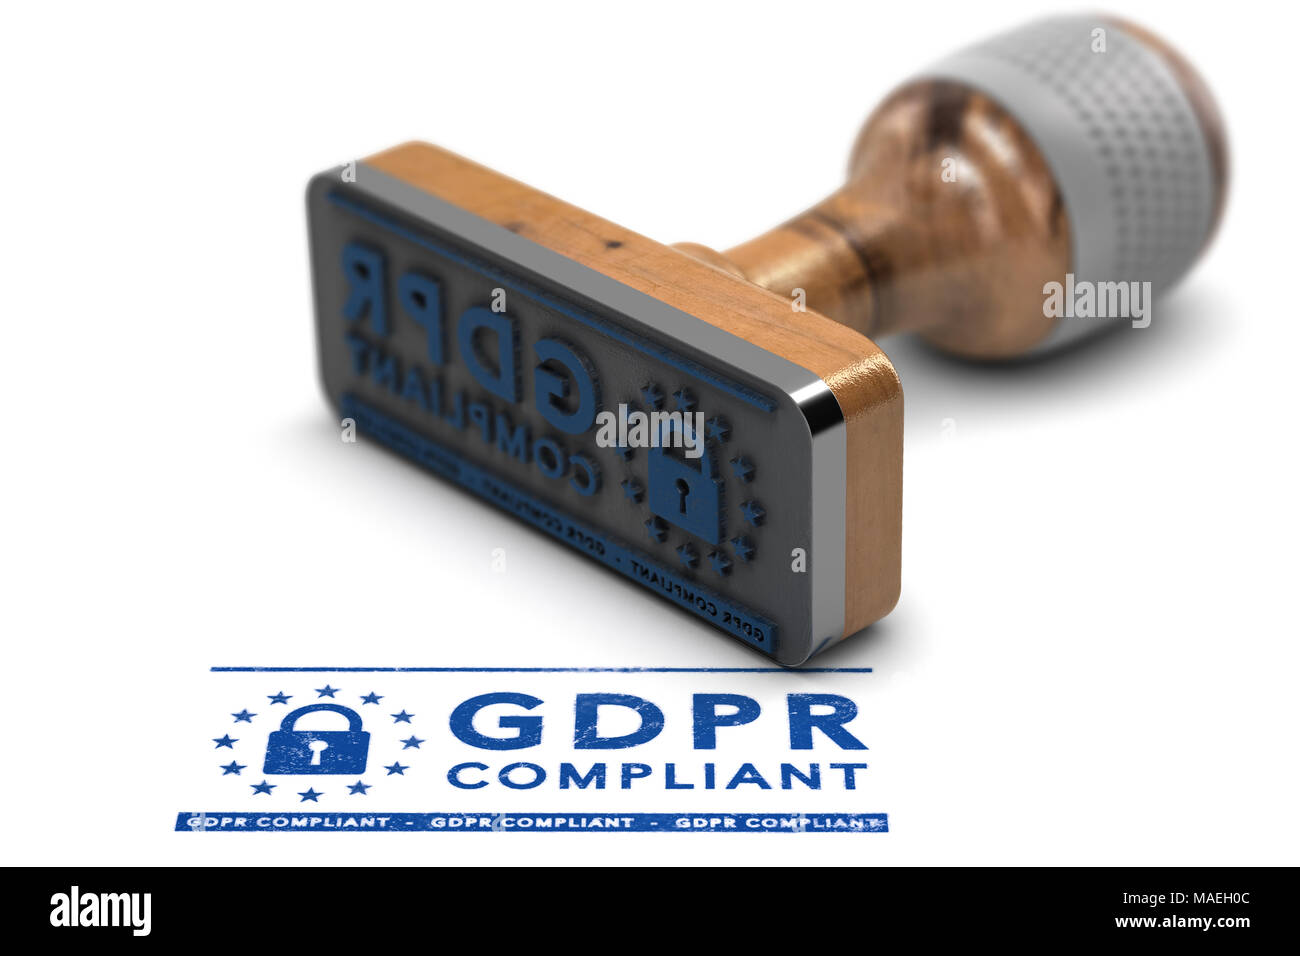 EU General Data Protection Regulation Compliance. Rubber stamp with the text GDPR Compliant over white background. 3D illustration - Stock Image